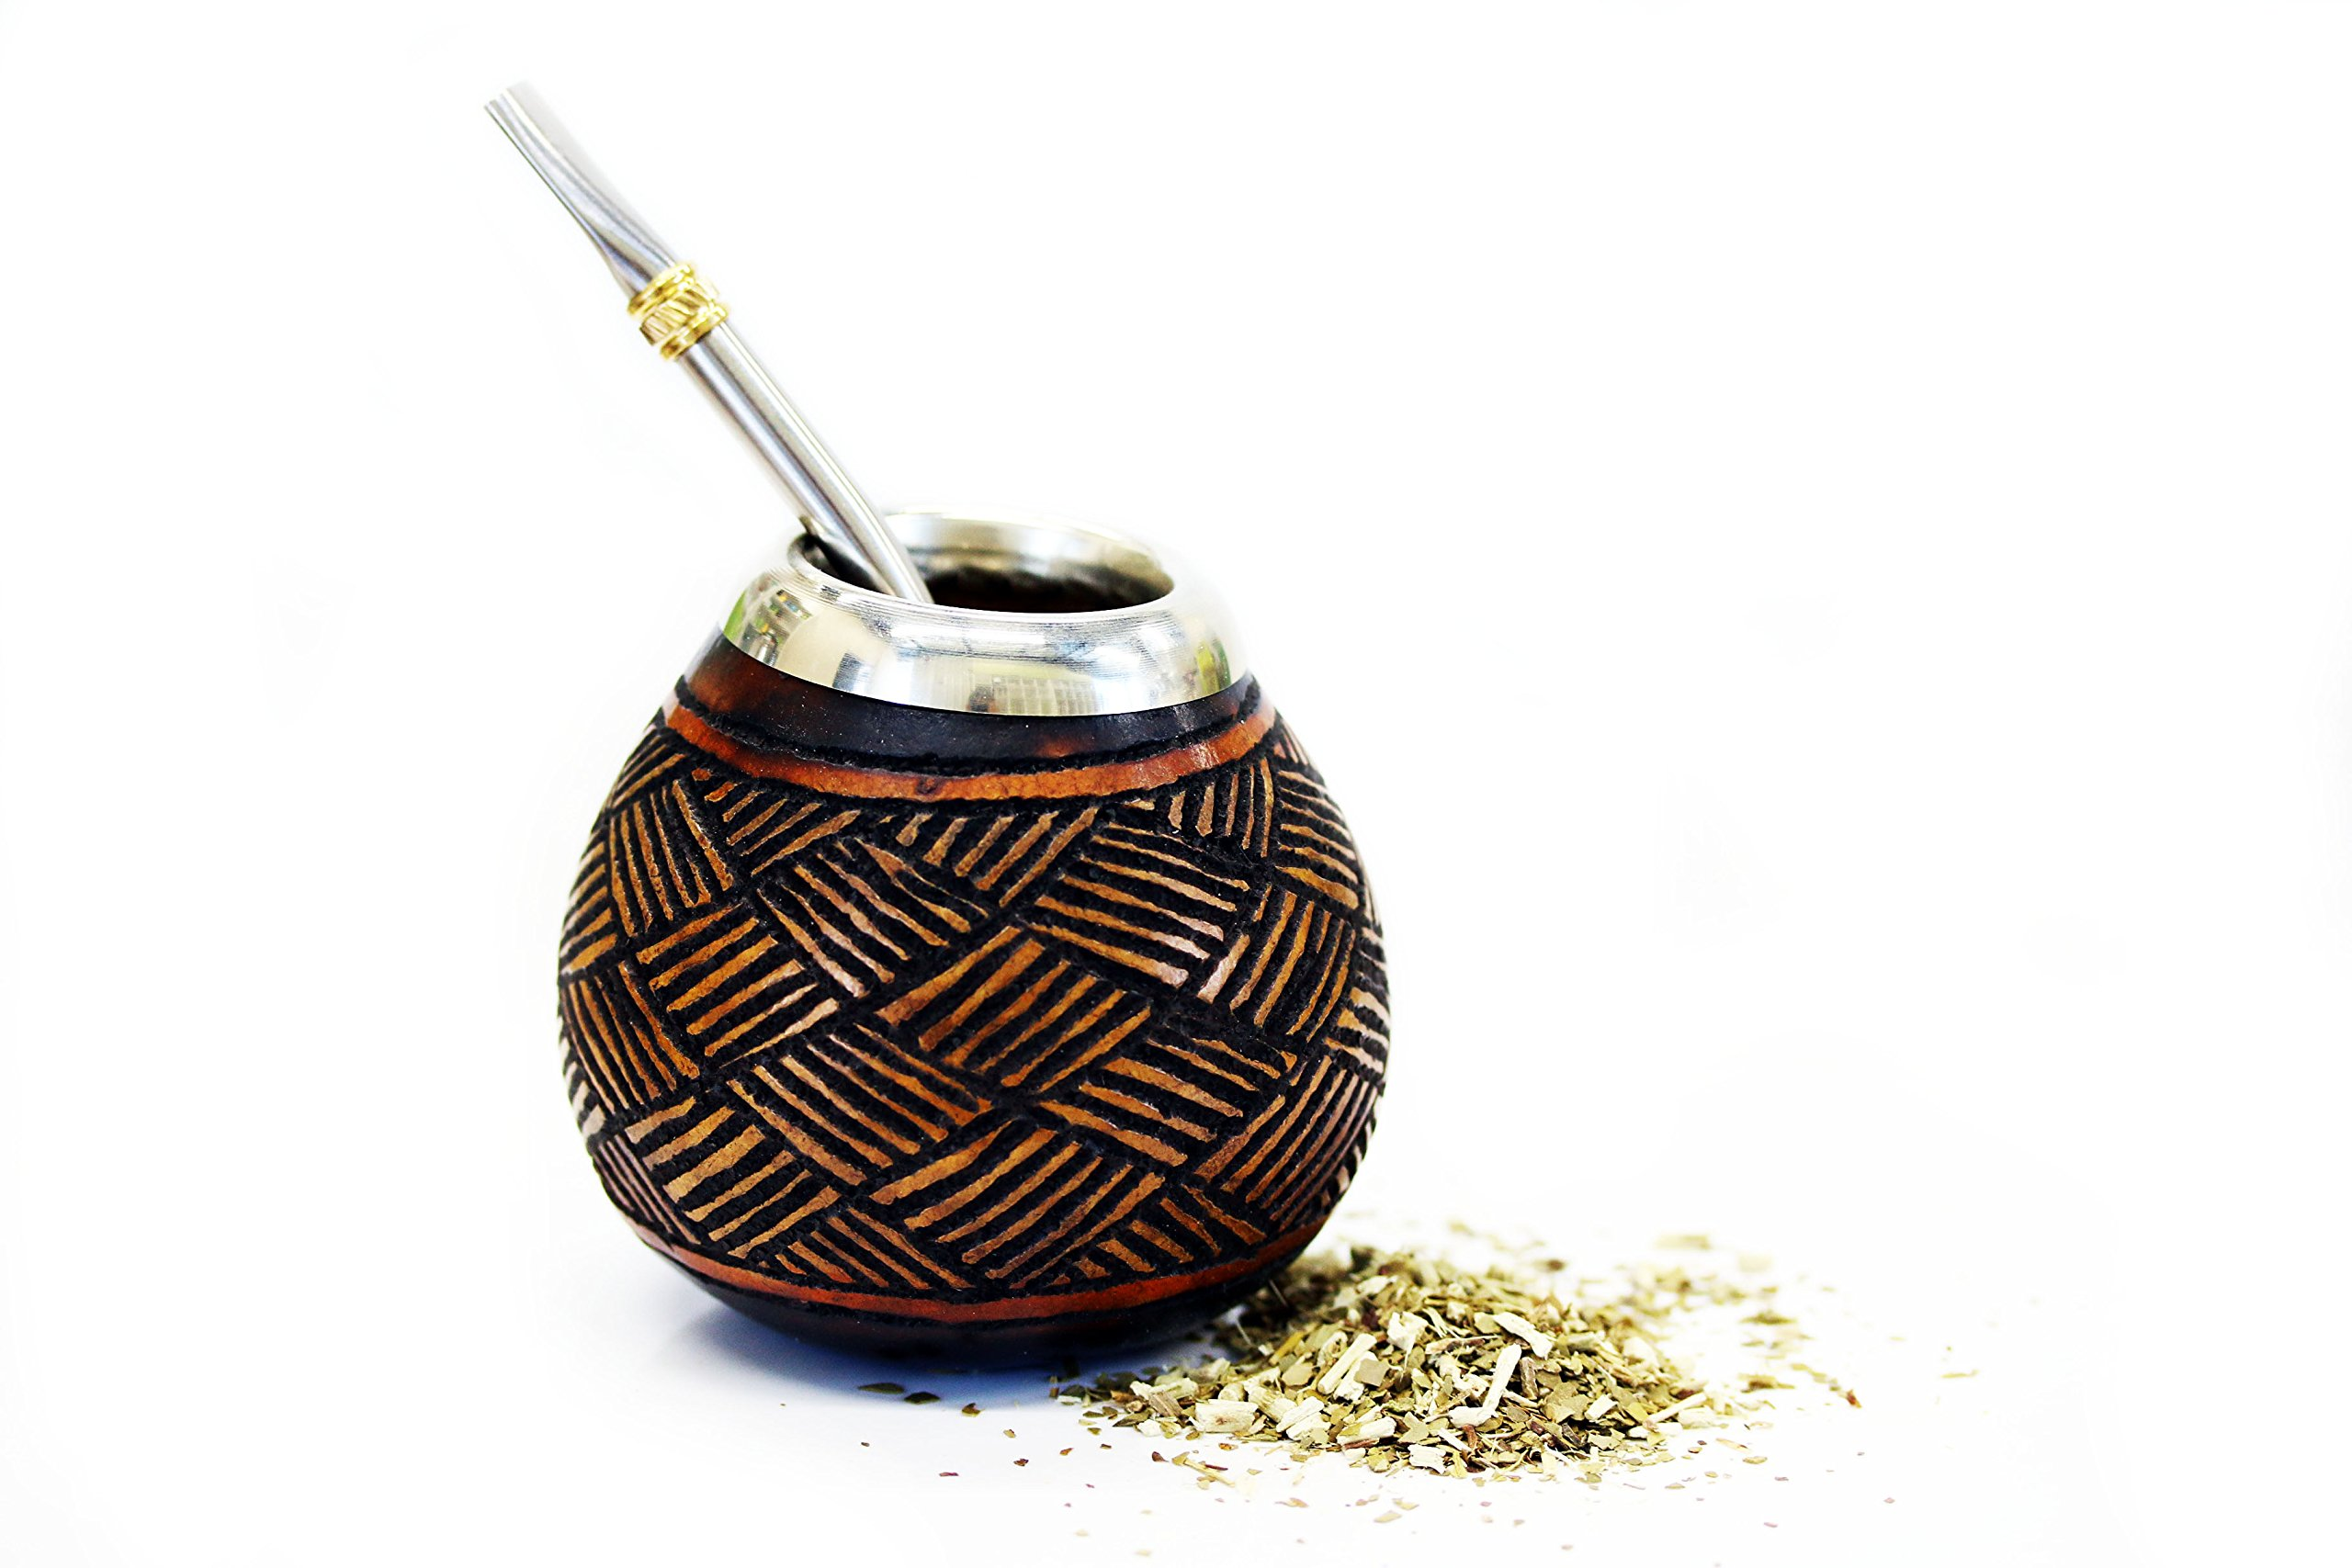 Tealyra - Hand Made Carved - Yerba Mate Gourd and Stainless Steel Bombilla Straw - Made in Argentina - Traditional Drinking Gourd - Authentic Argentinian Mate Cup (#1601) by Tealyra